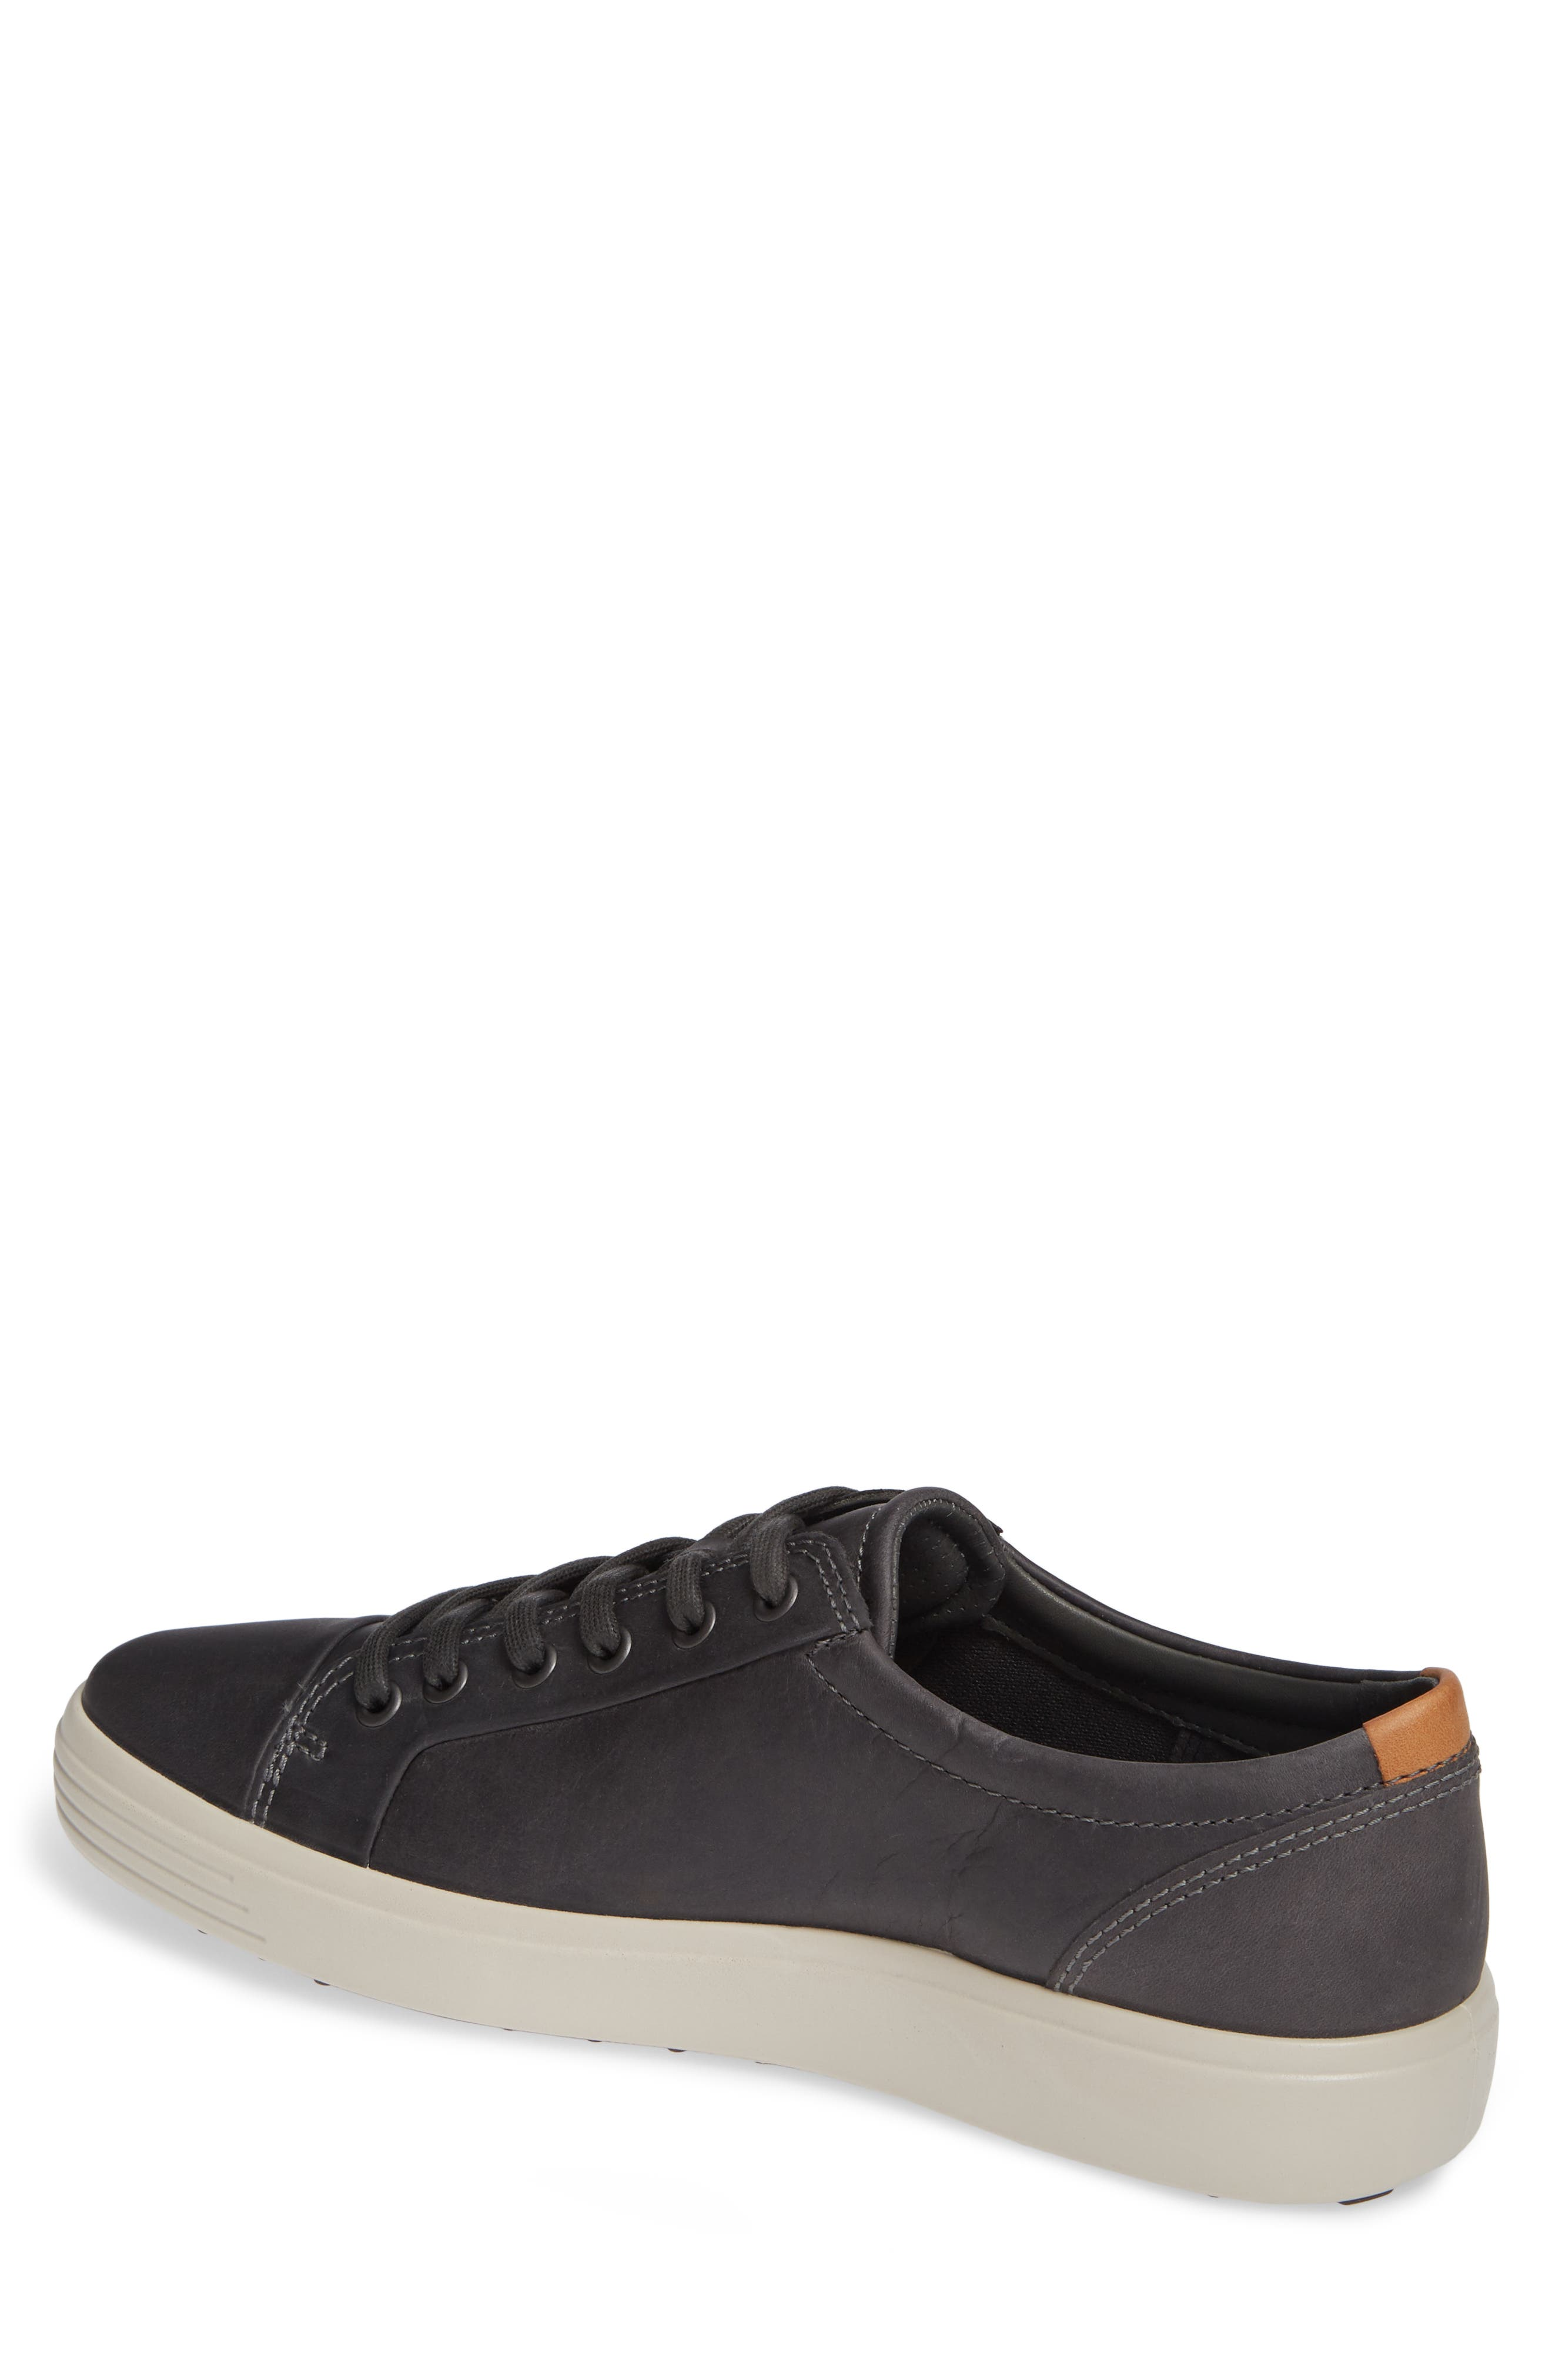 ECCO,                             Soft VII Lace-Up Sneaker,                             Alternate thumbnail 2, color,                             GREY OILED NUBUCK